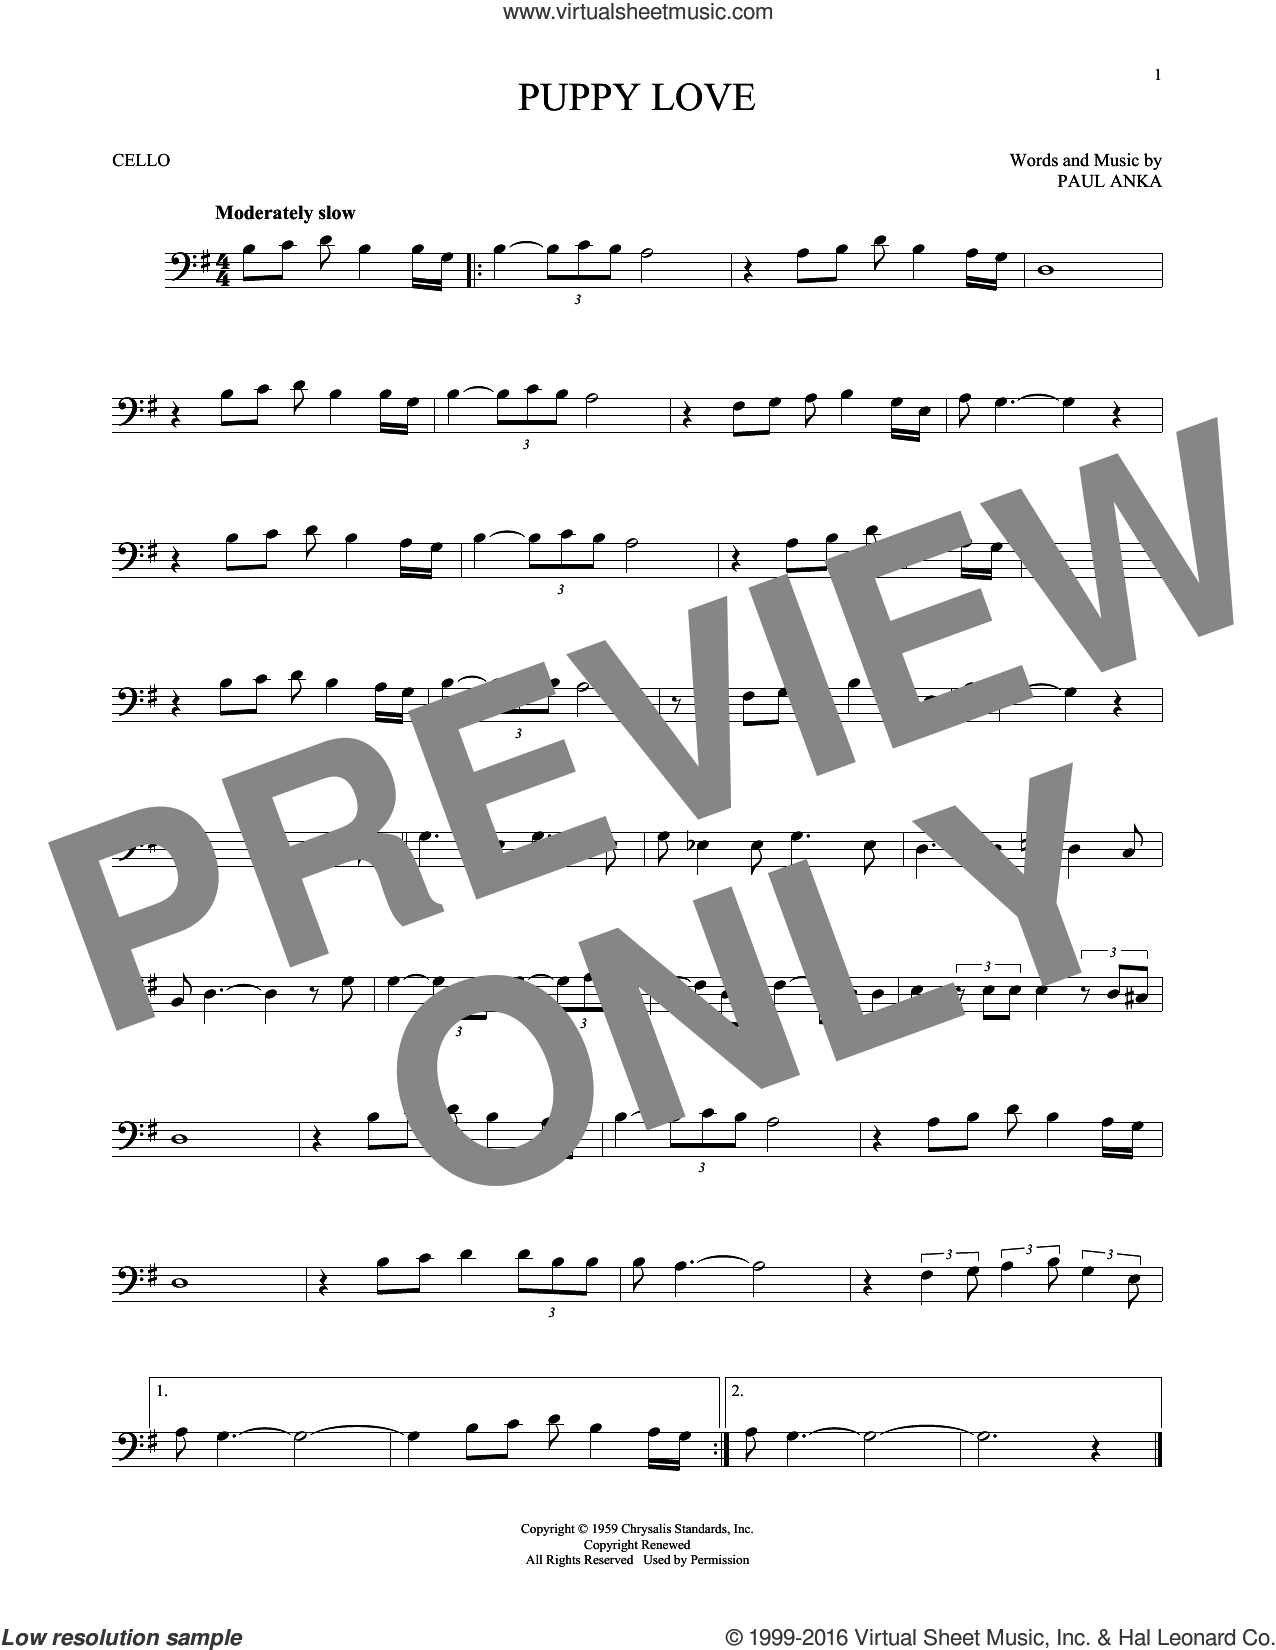 Puppy Love sheet music for cello solo by Paul Anka and Donny Osmond, intermediate skill level